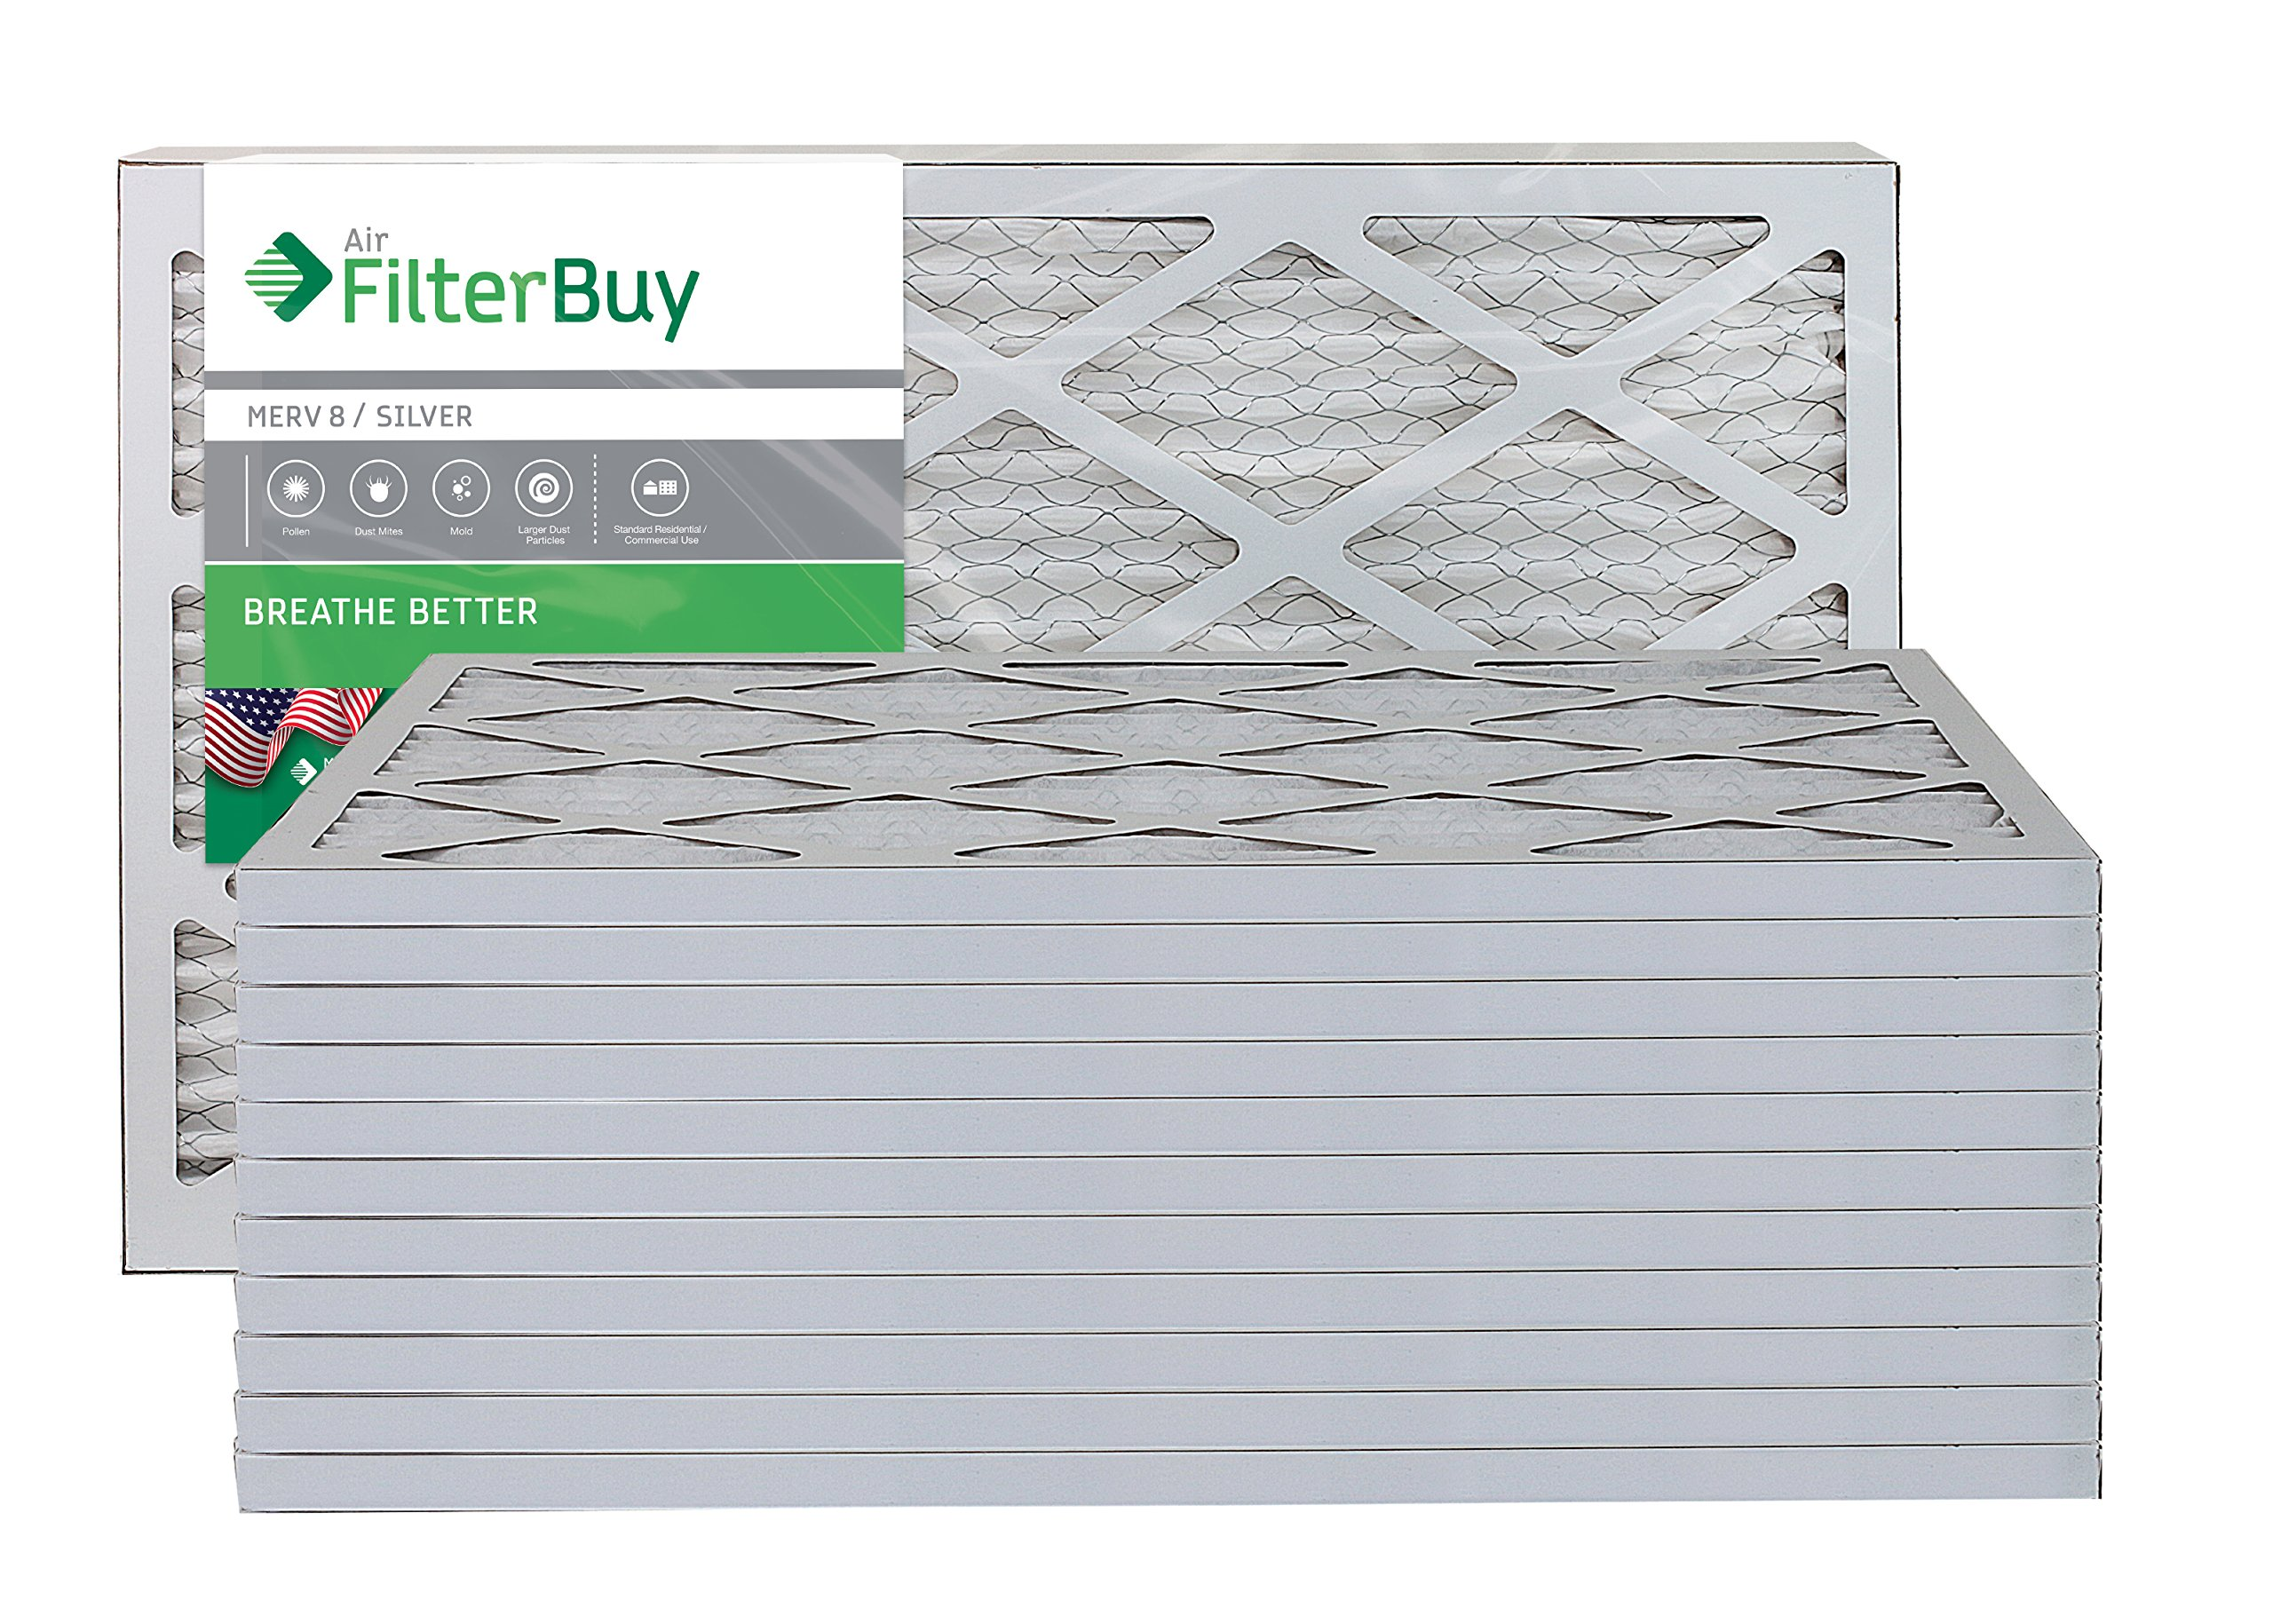 AFB Silver MERV 8 12x25x1 Pleated AC Furnace Air Filter. Pack of 12 Filters. 100% produced in the USA.